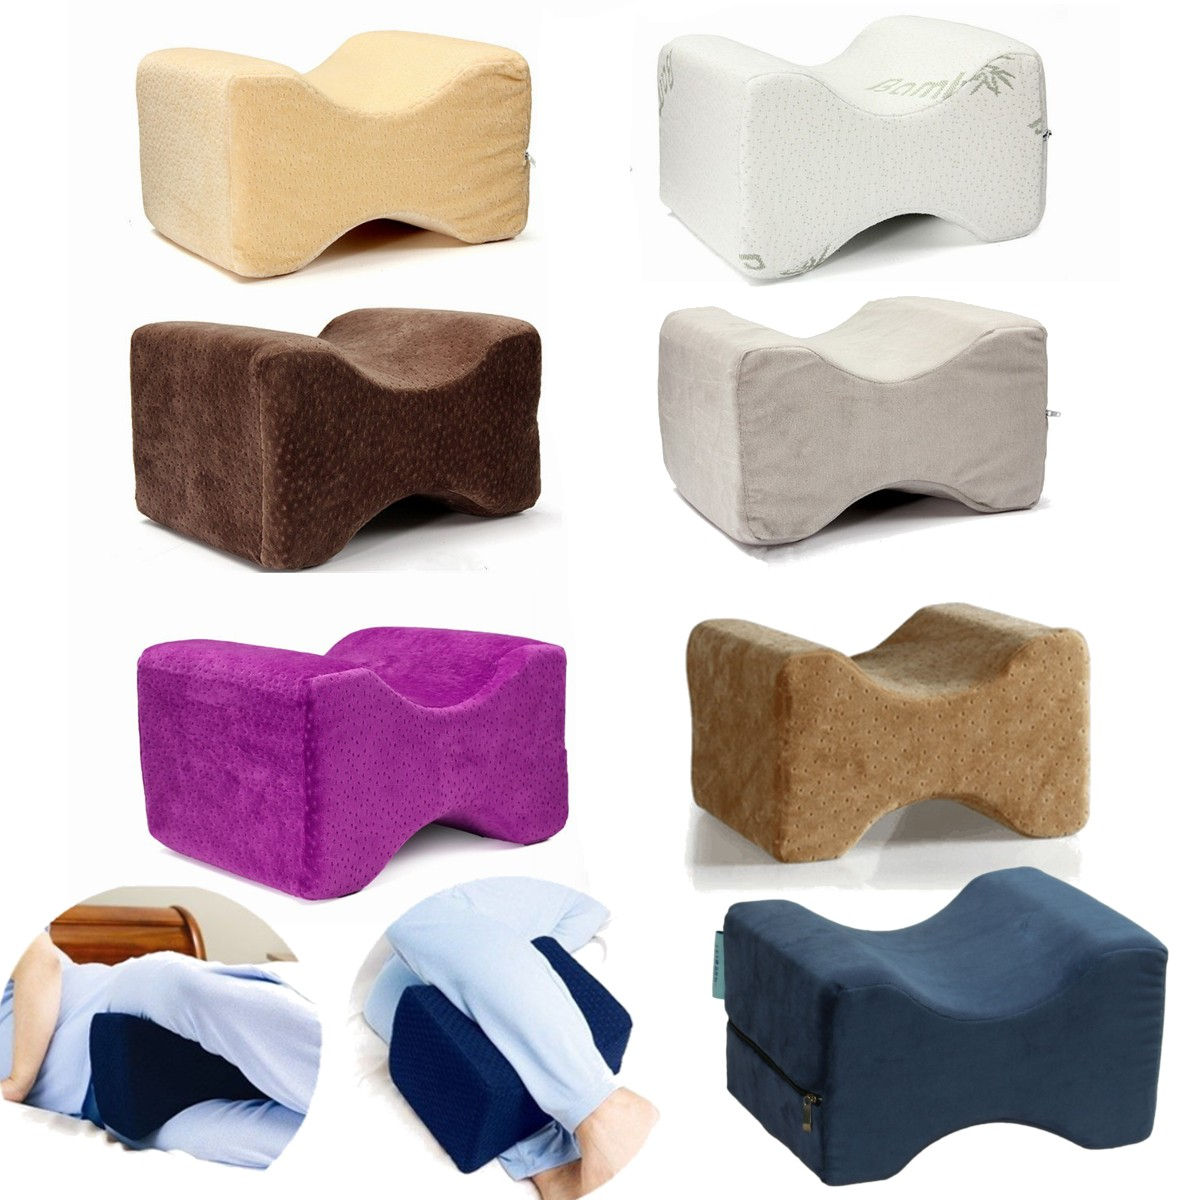 SaicleHome Breathable Memory Foam Knee & Leg Pillow Cushion - Pain Relief Wedge For Sciatic Nerve & Legs & Back